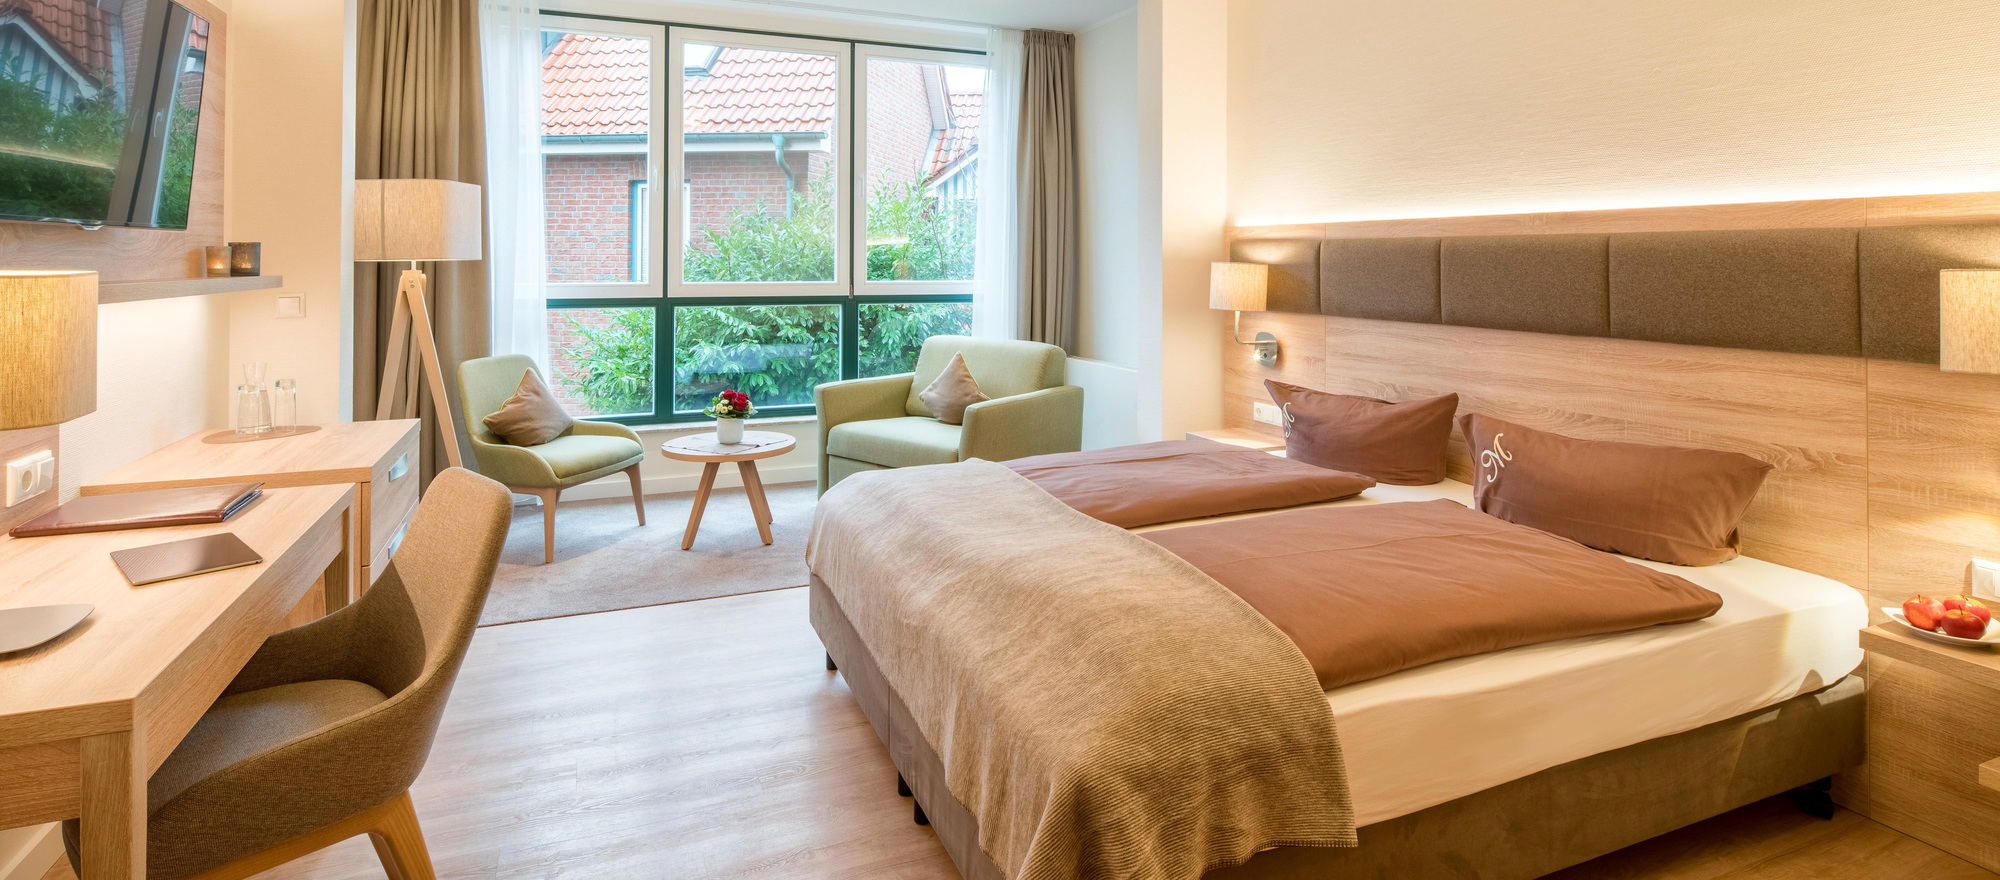 Double room in the Ringhotel Altes Zollhaus, 4-star hotel on the North Sea coast